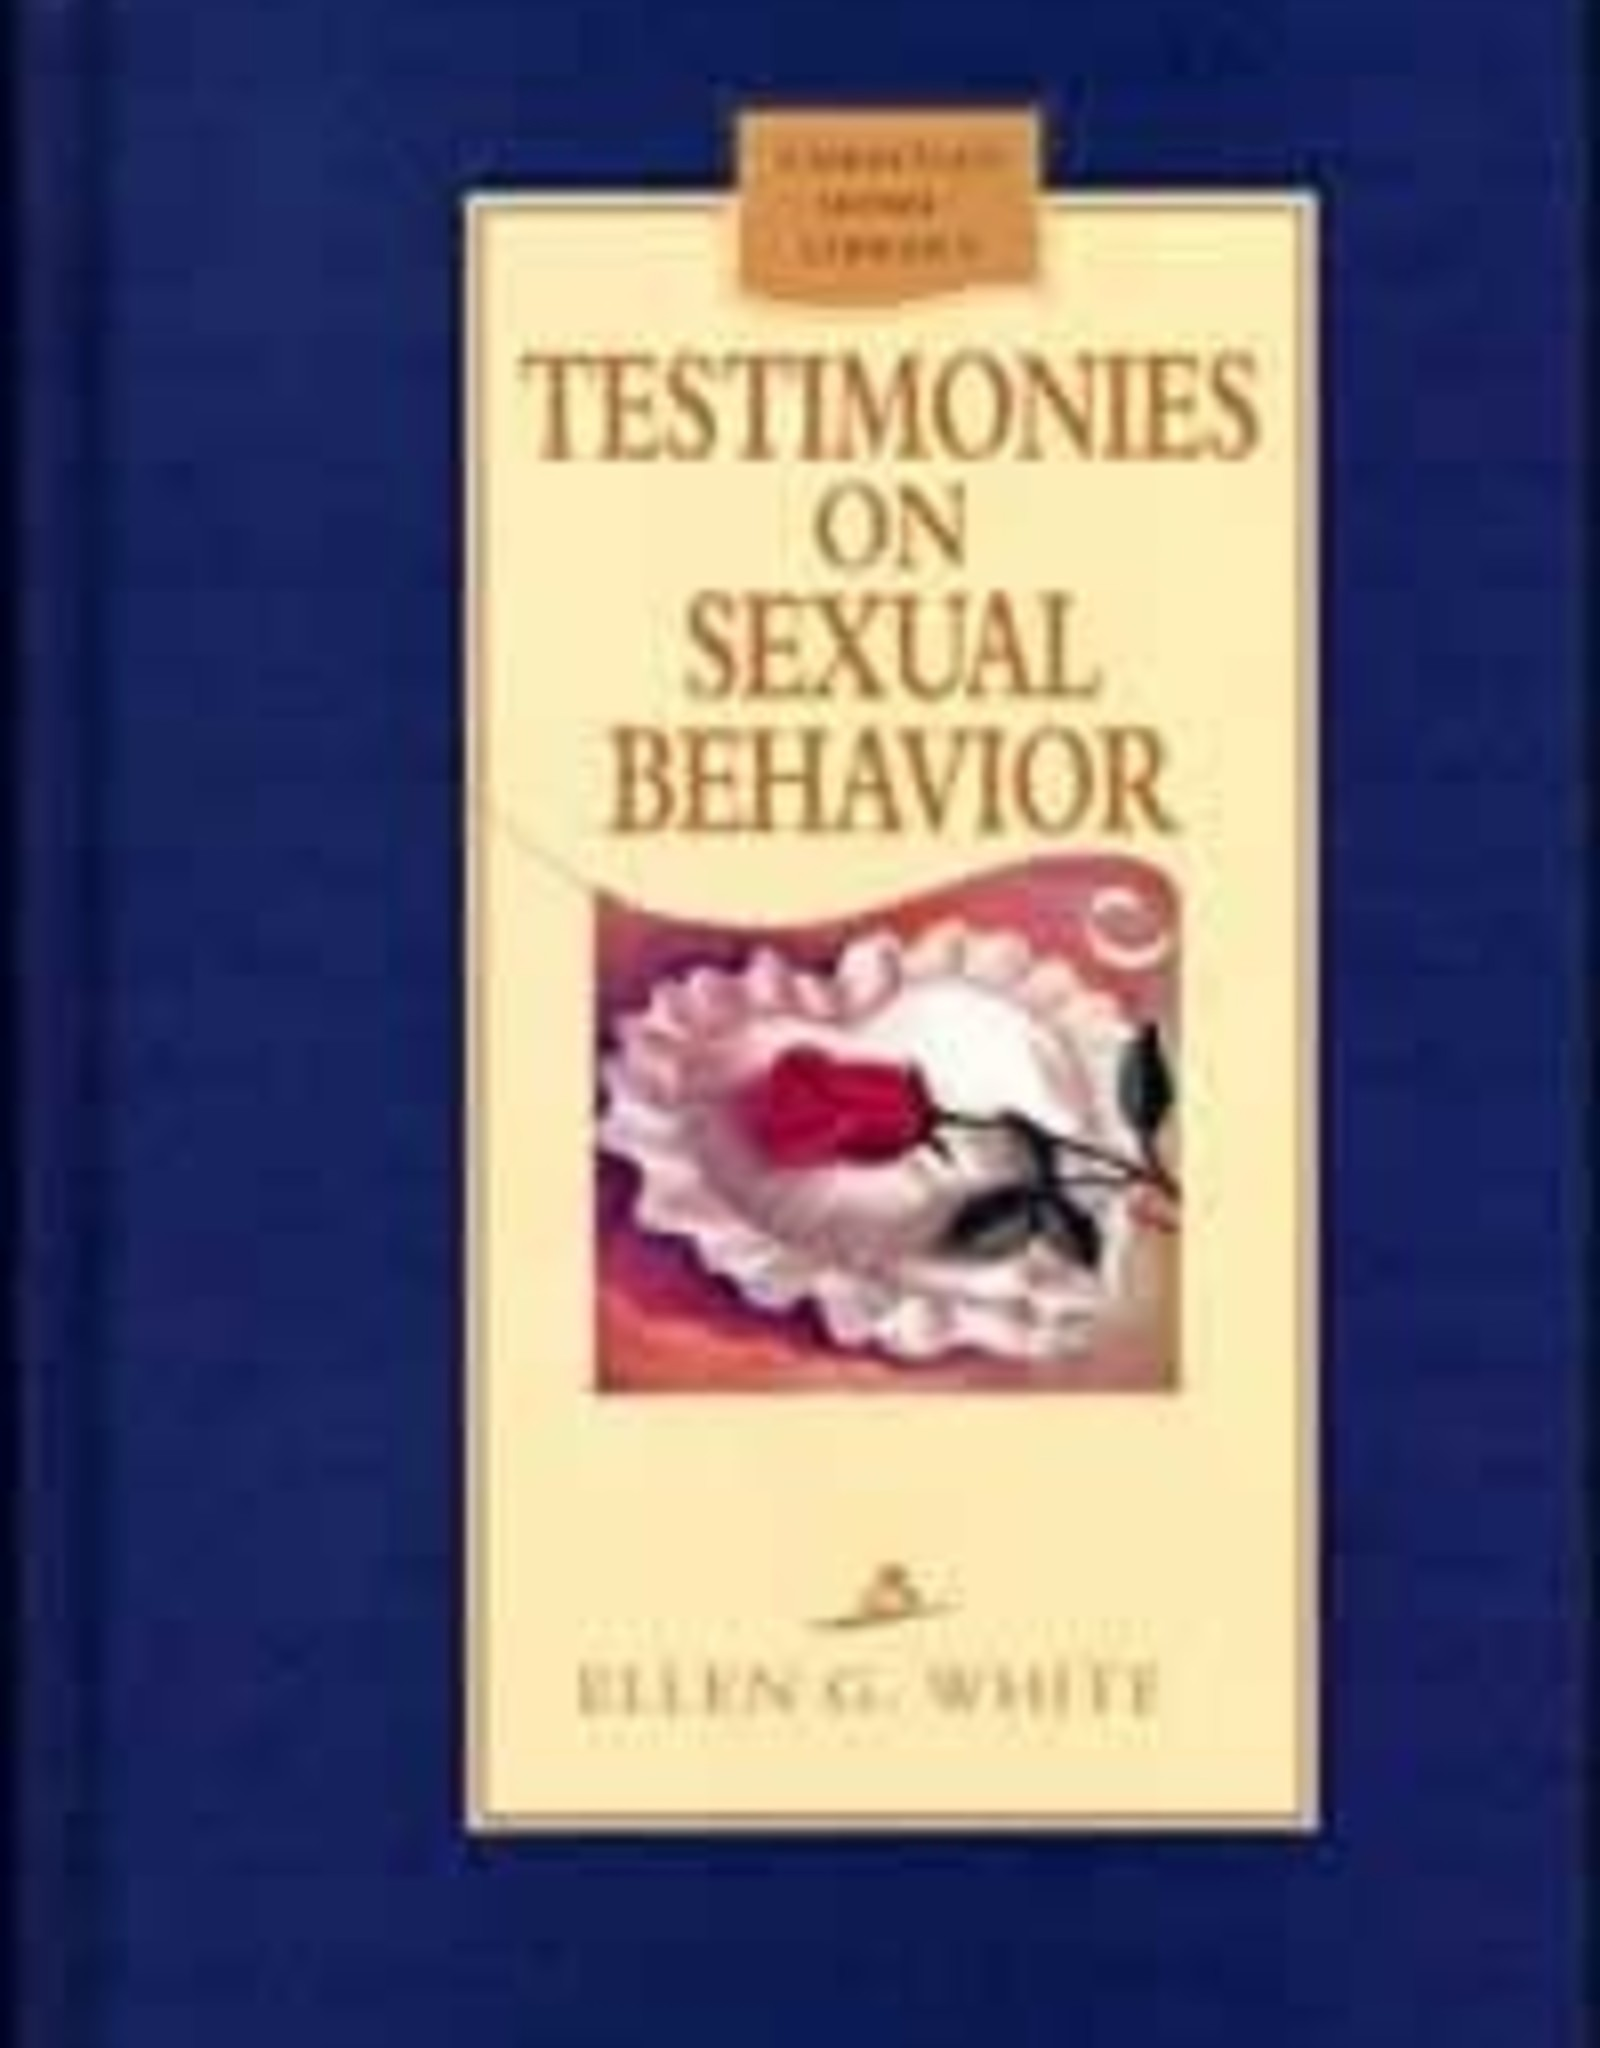 Ellen G.White Testimonies on sexual behavior